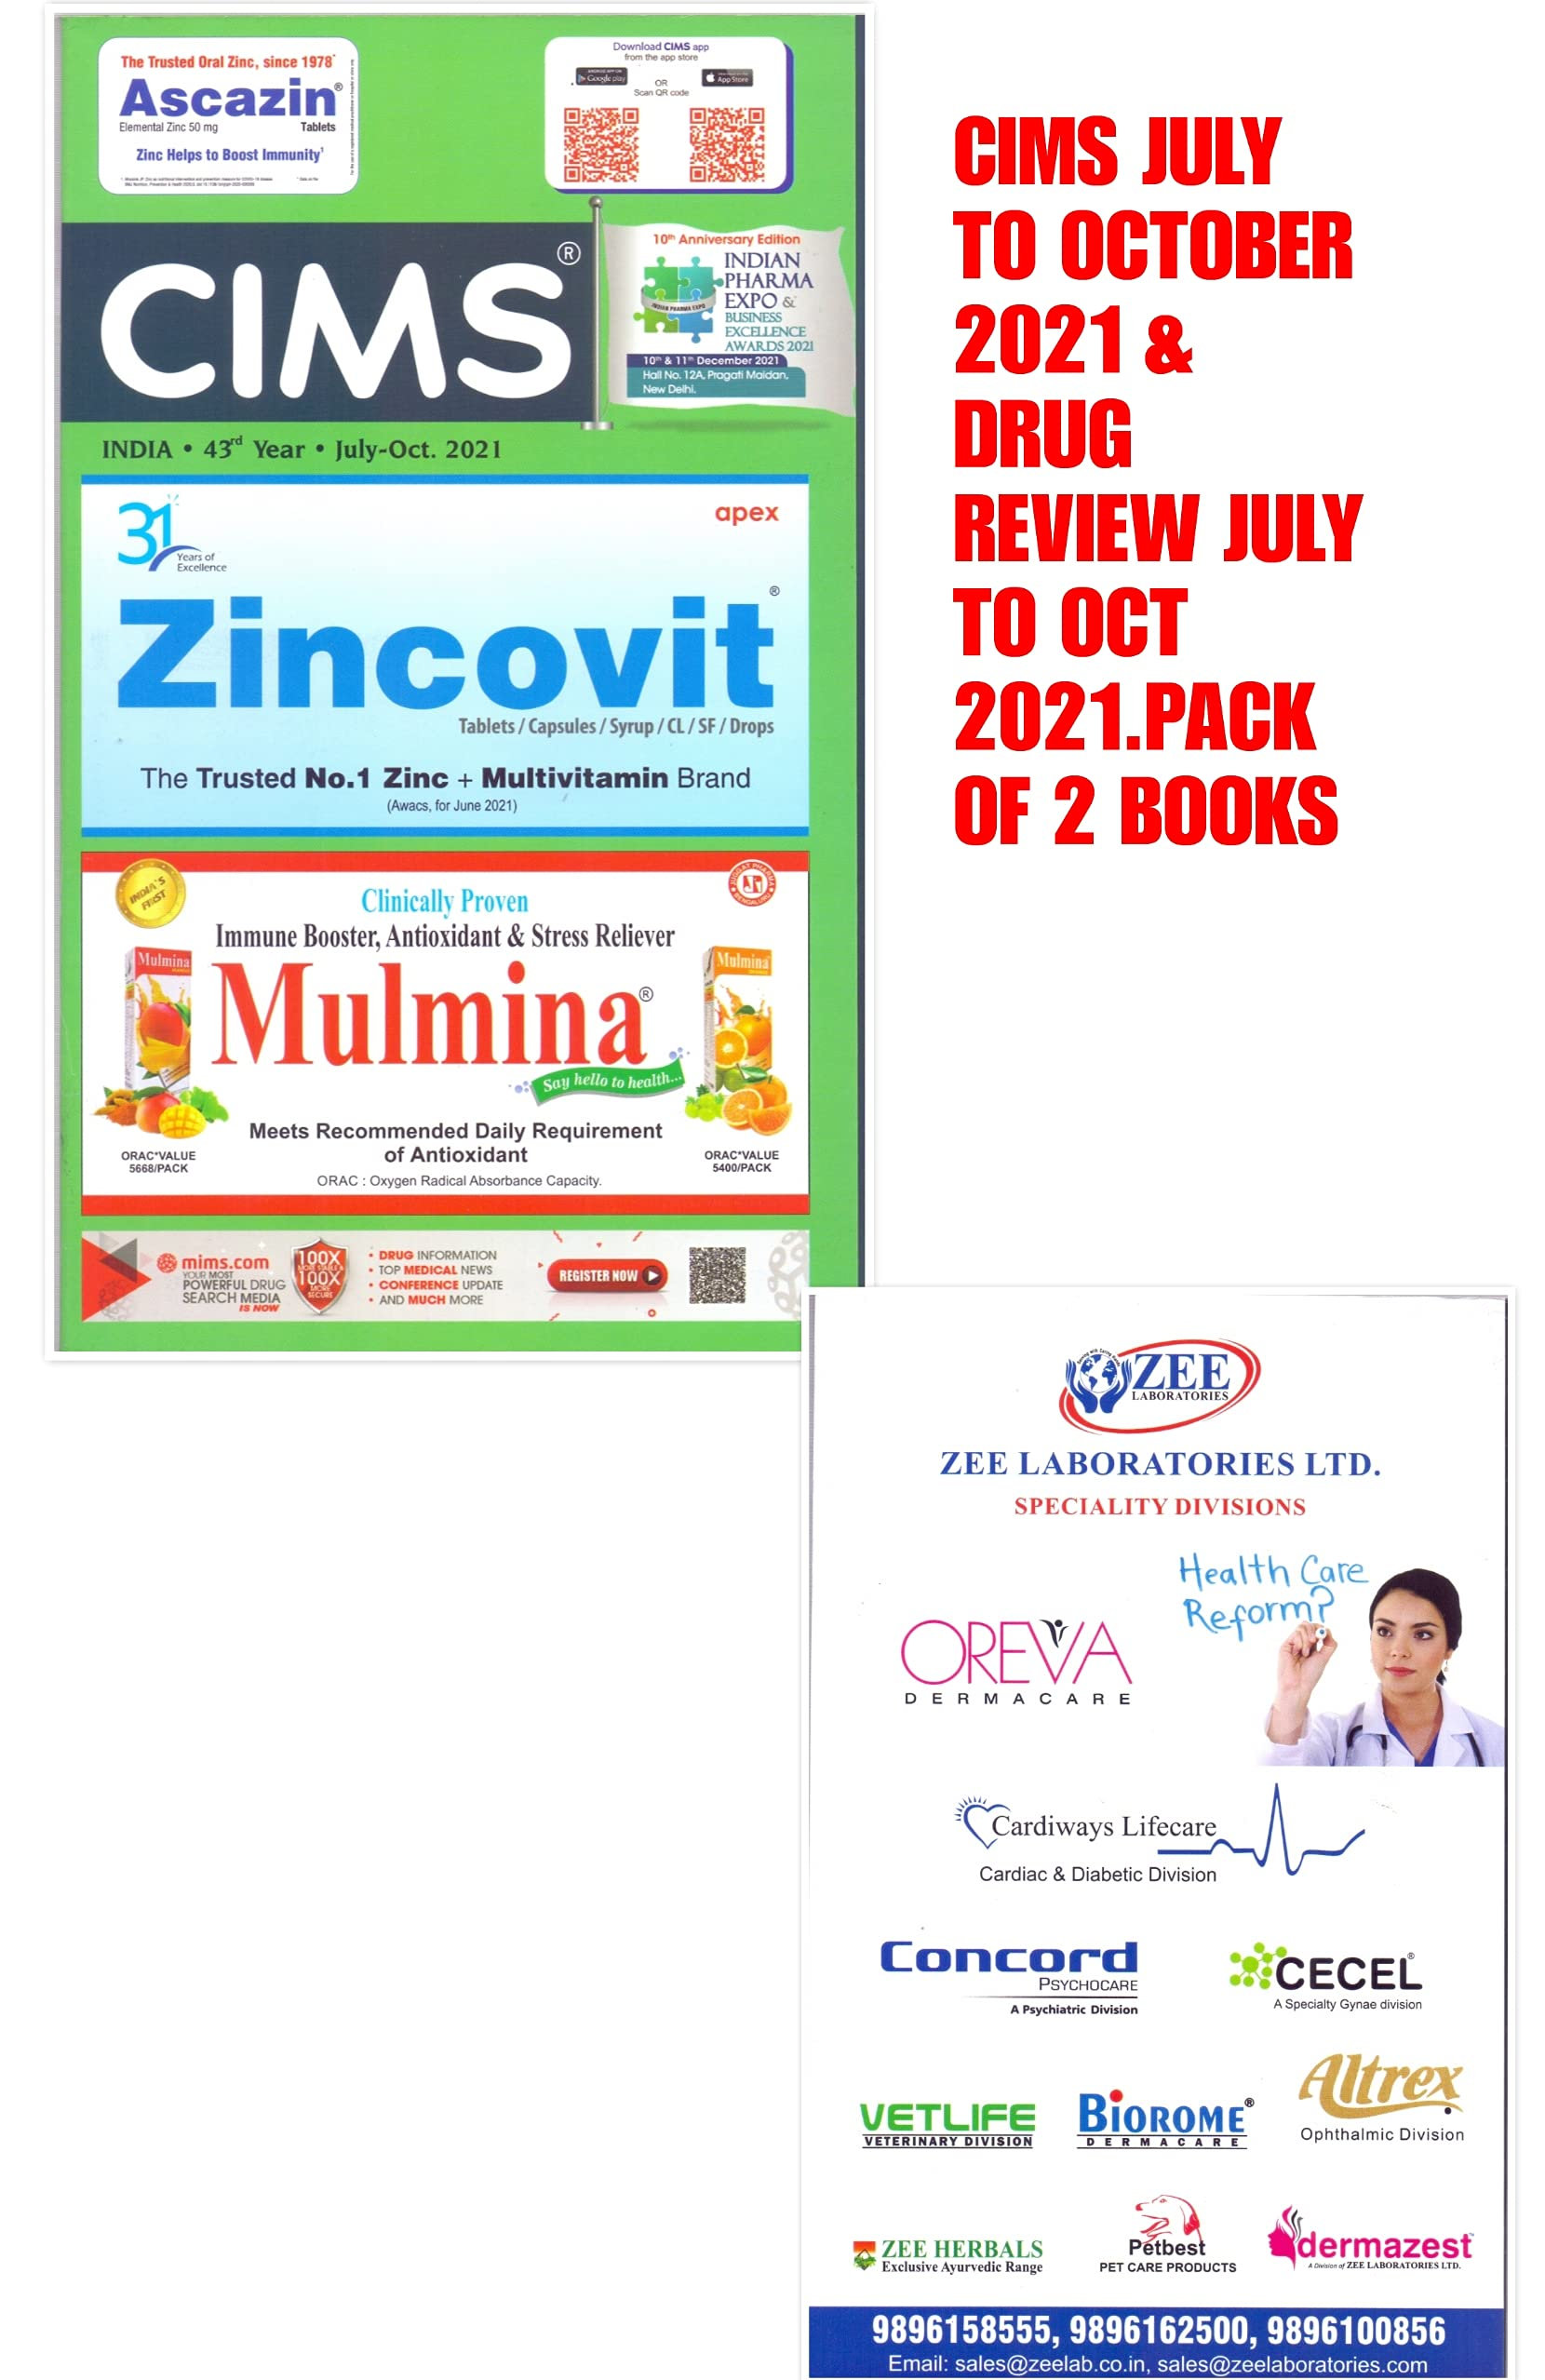 CIMS JULY TO OCTOBER 2021 WITH DRUG REVIEW JULY TO OCTOBER 2021. ( PACK OF 2 BOOKS)